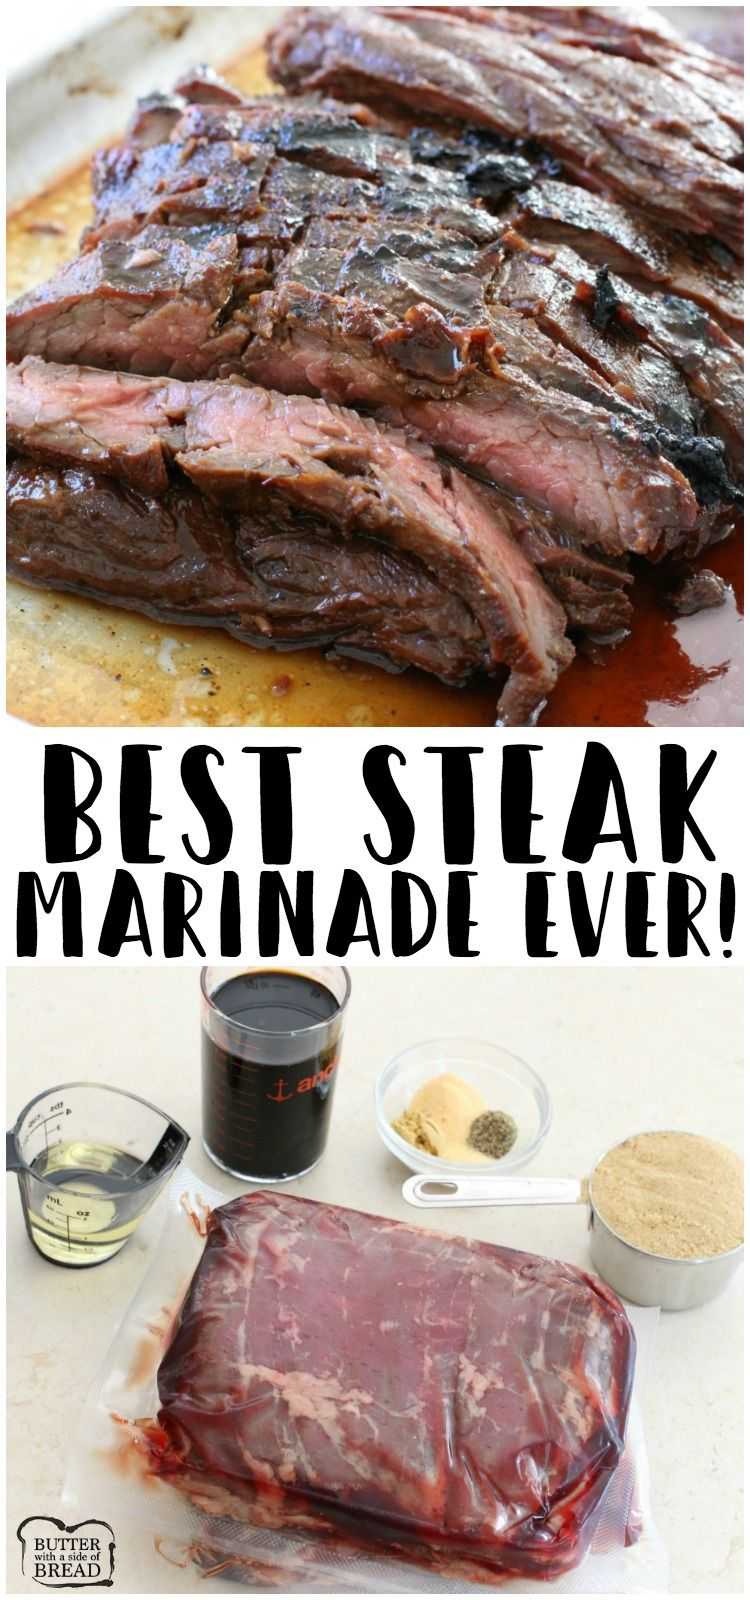 Insanely Delicious Steak Marinade Recipe That S A Family Favorite It Really Is The Best Com Easy Steak Marinade Recipes Steak Marinade Steak Marinade Recipes